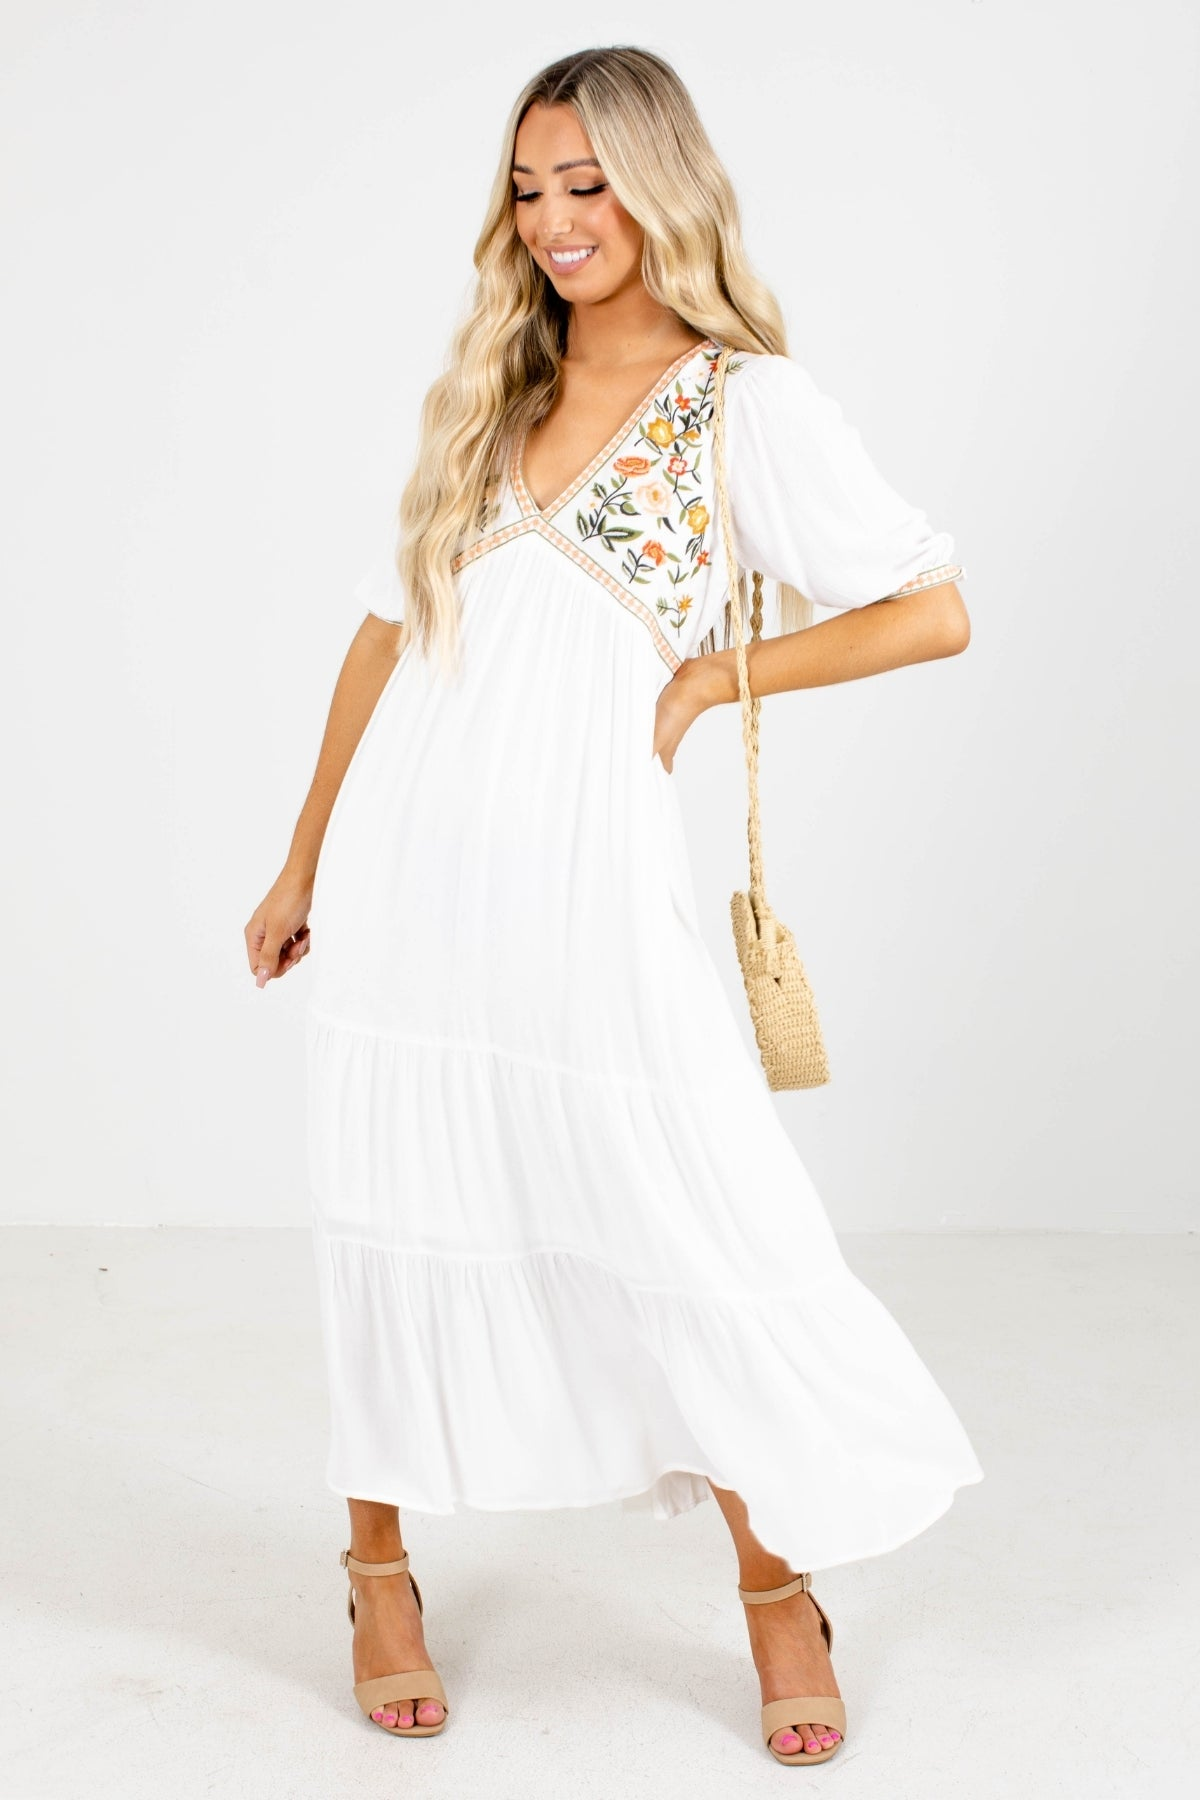 White Dresses Collection: White Maxi Dress